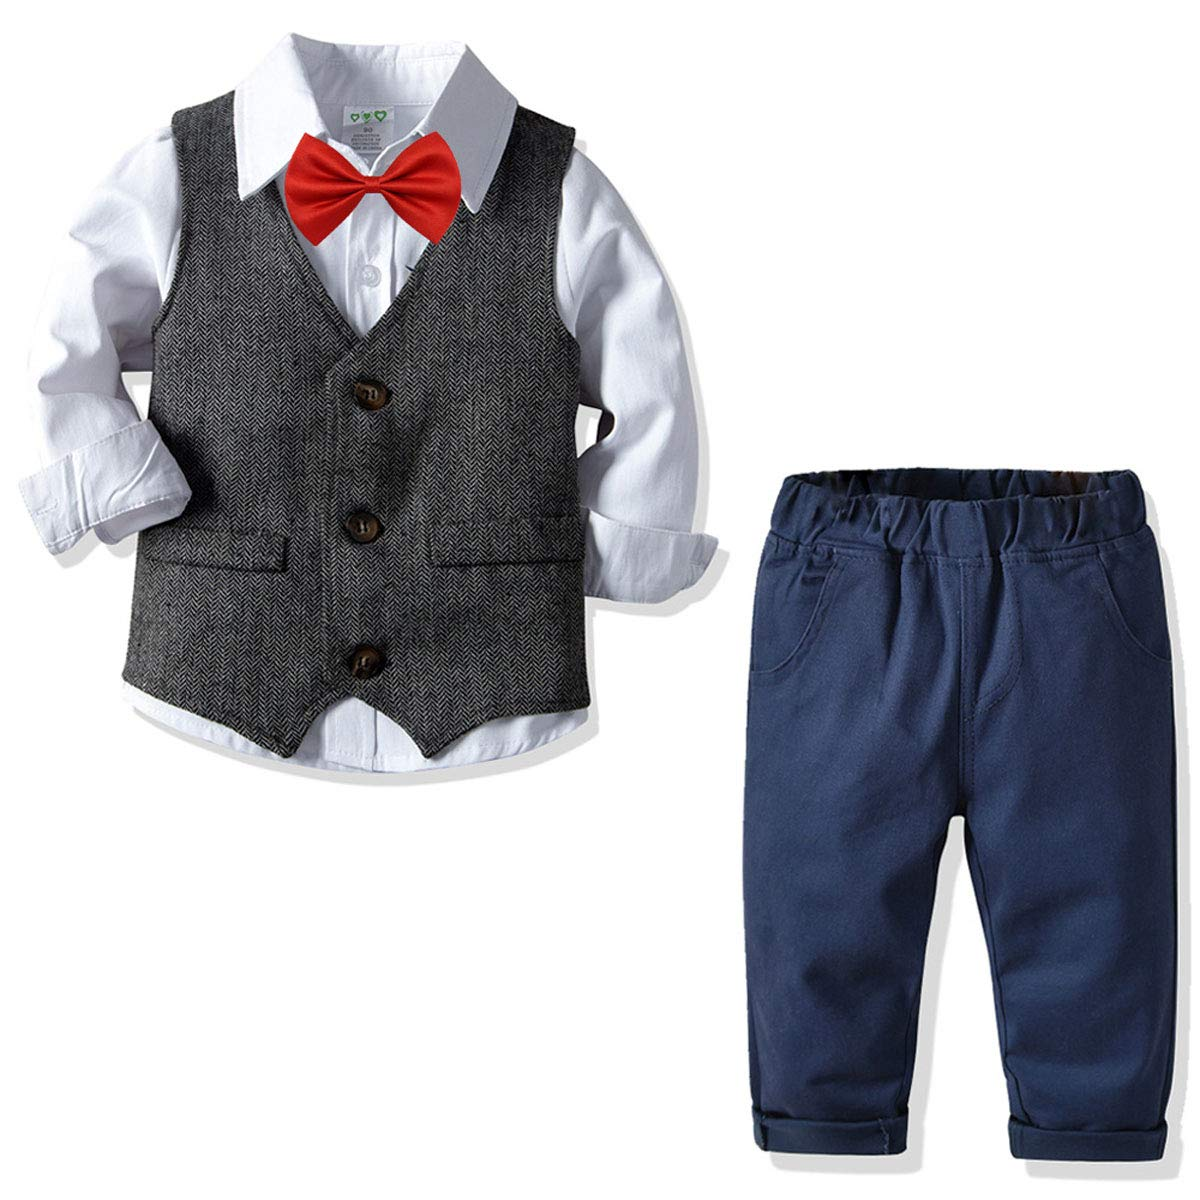 Vest Bow Tie Wedding Suits 4Pcs Outfits Pants Toddler Boys Gentleman Clothing Sets Cotton Long Sleeve Shirts